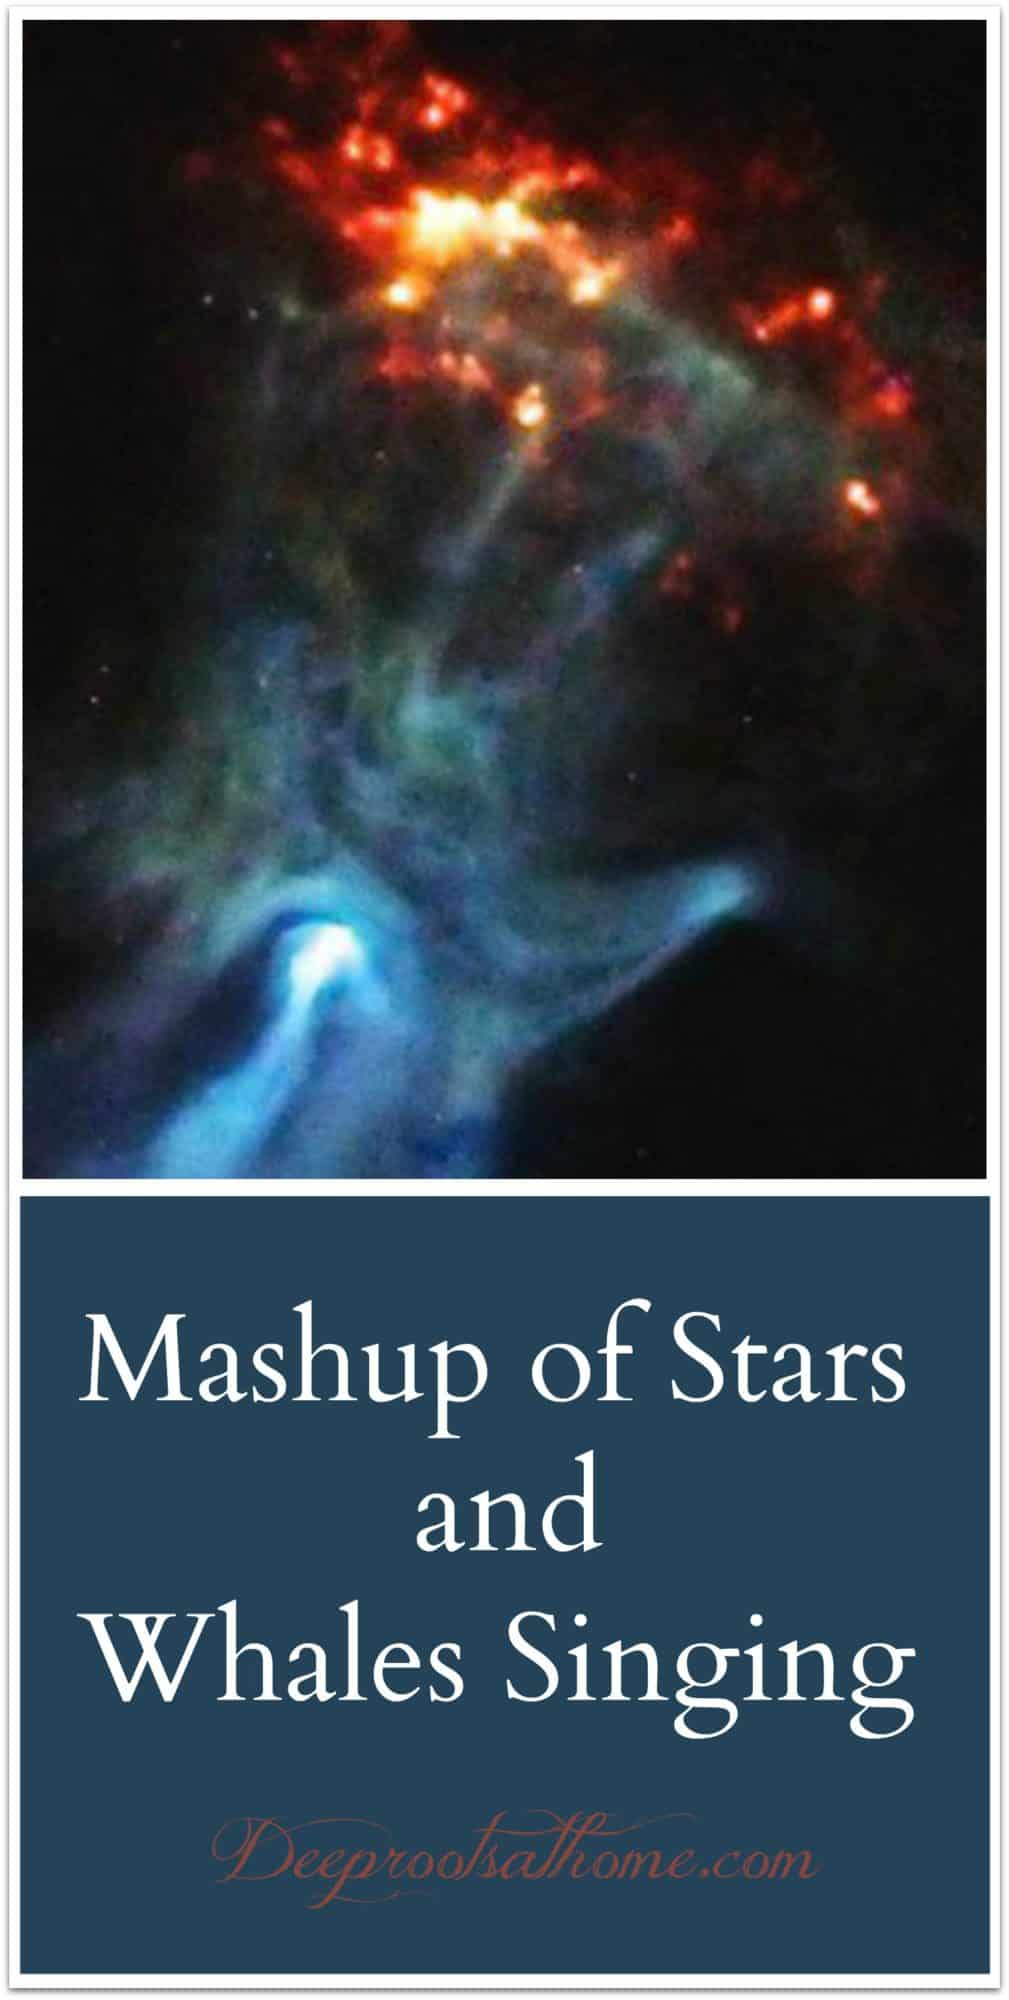 Mashup of Stars and Whales Singing God's Praises. A Pulsar's Hand